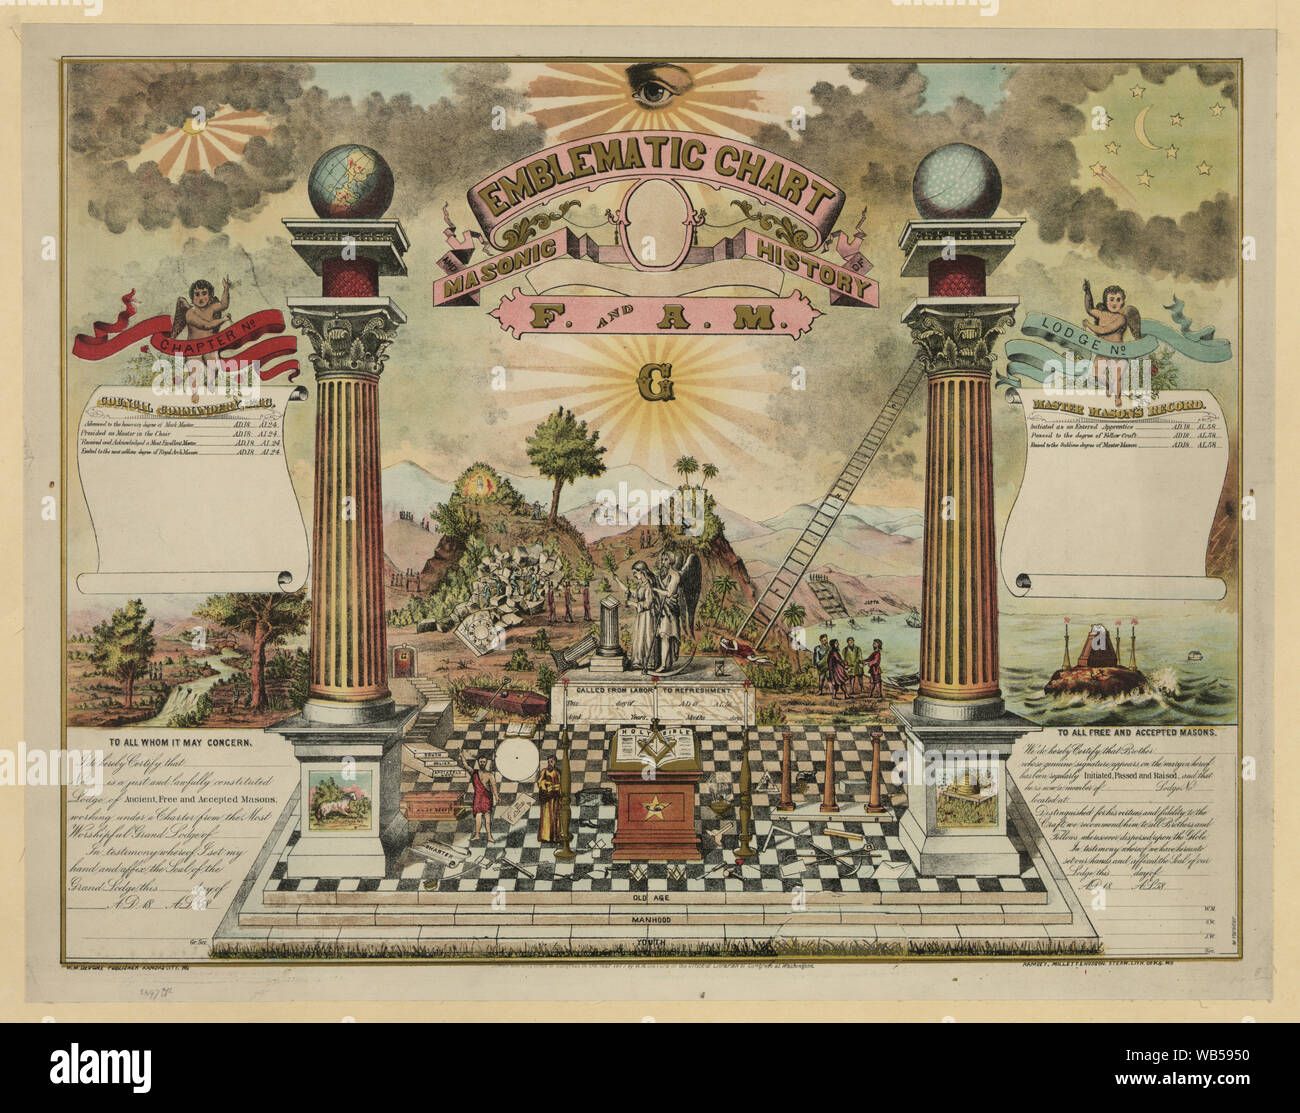 Emblematic chart and Masonic history of F[ree] and A[ccepted] M[asons] / Ramsey, Millet, & Hudson Steam. Lith. Co. Abstract/medium: 1 print: lithograph, col. Stock Photo